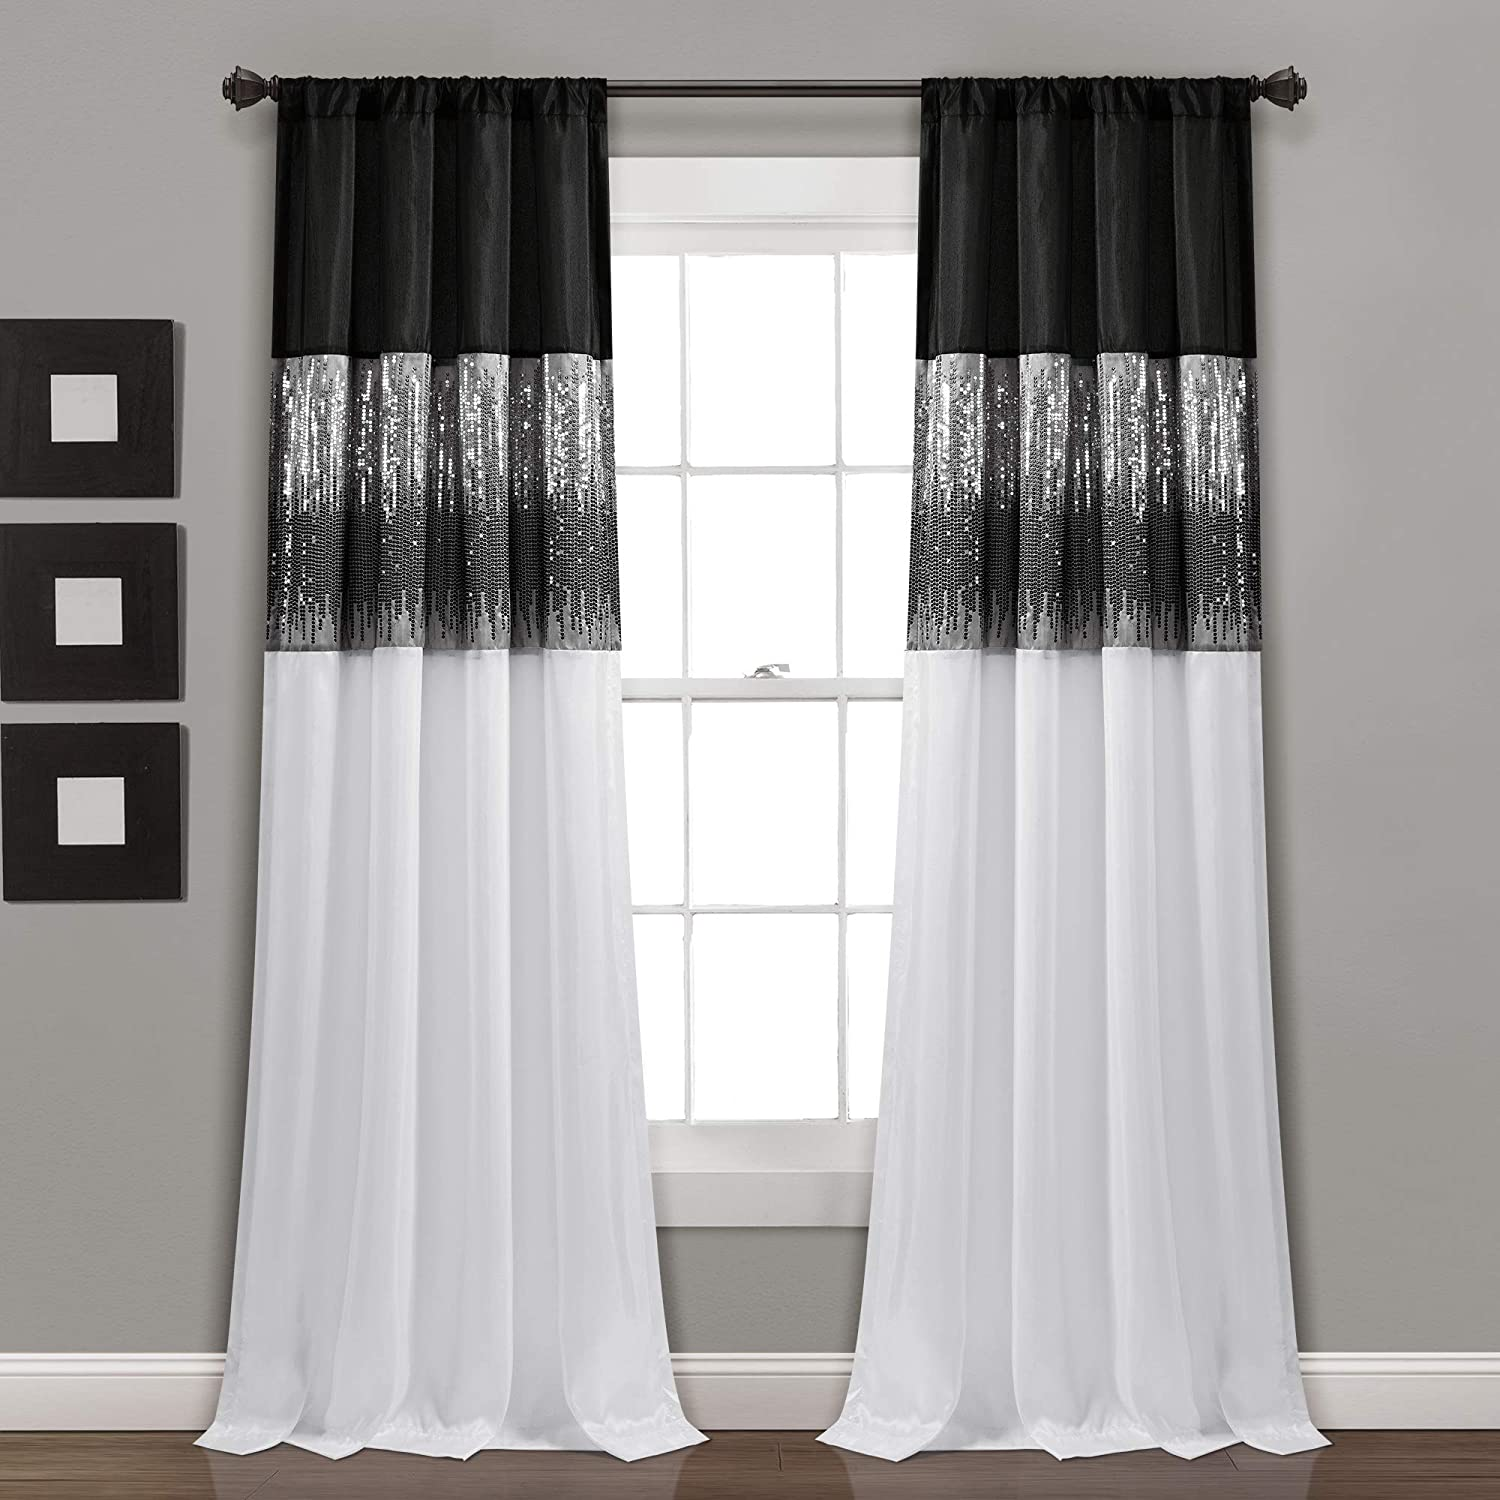 """Lush Decor Black and White Night Sky Panel for Living, Bedroom, Dining Room (Single Curtain), 84"""" x 42"""""""